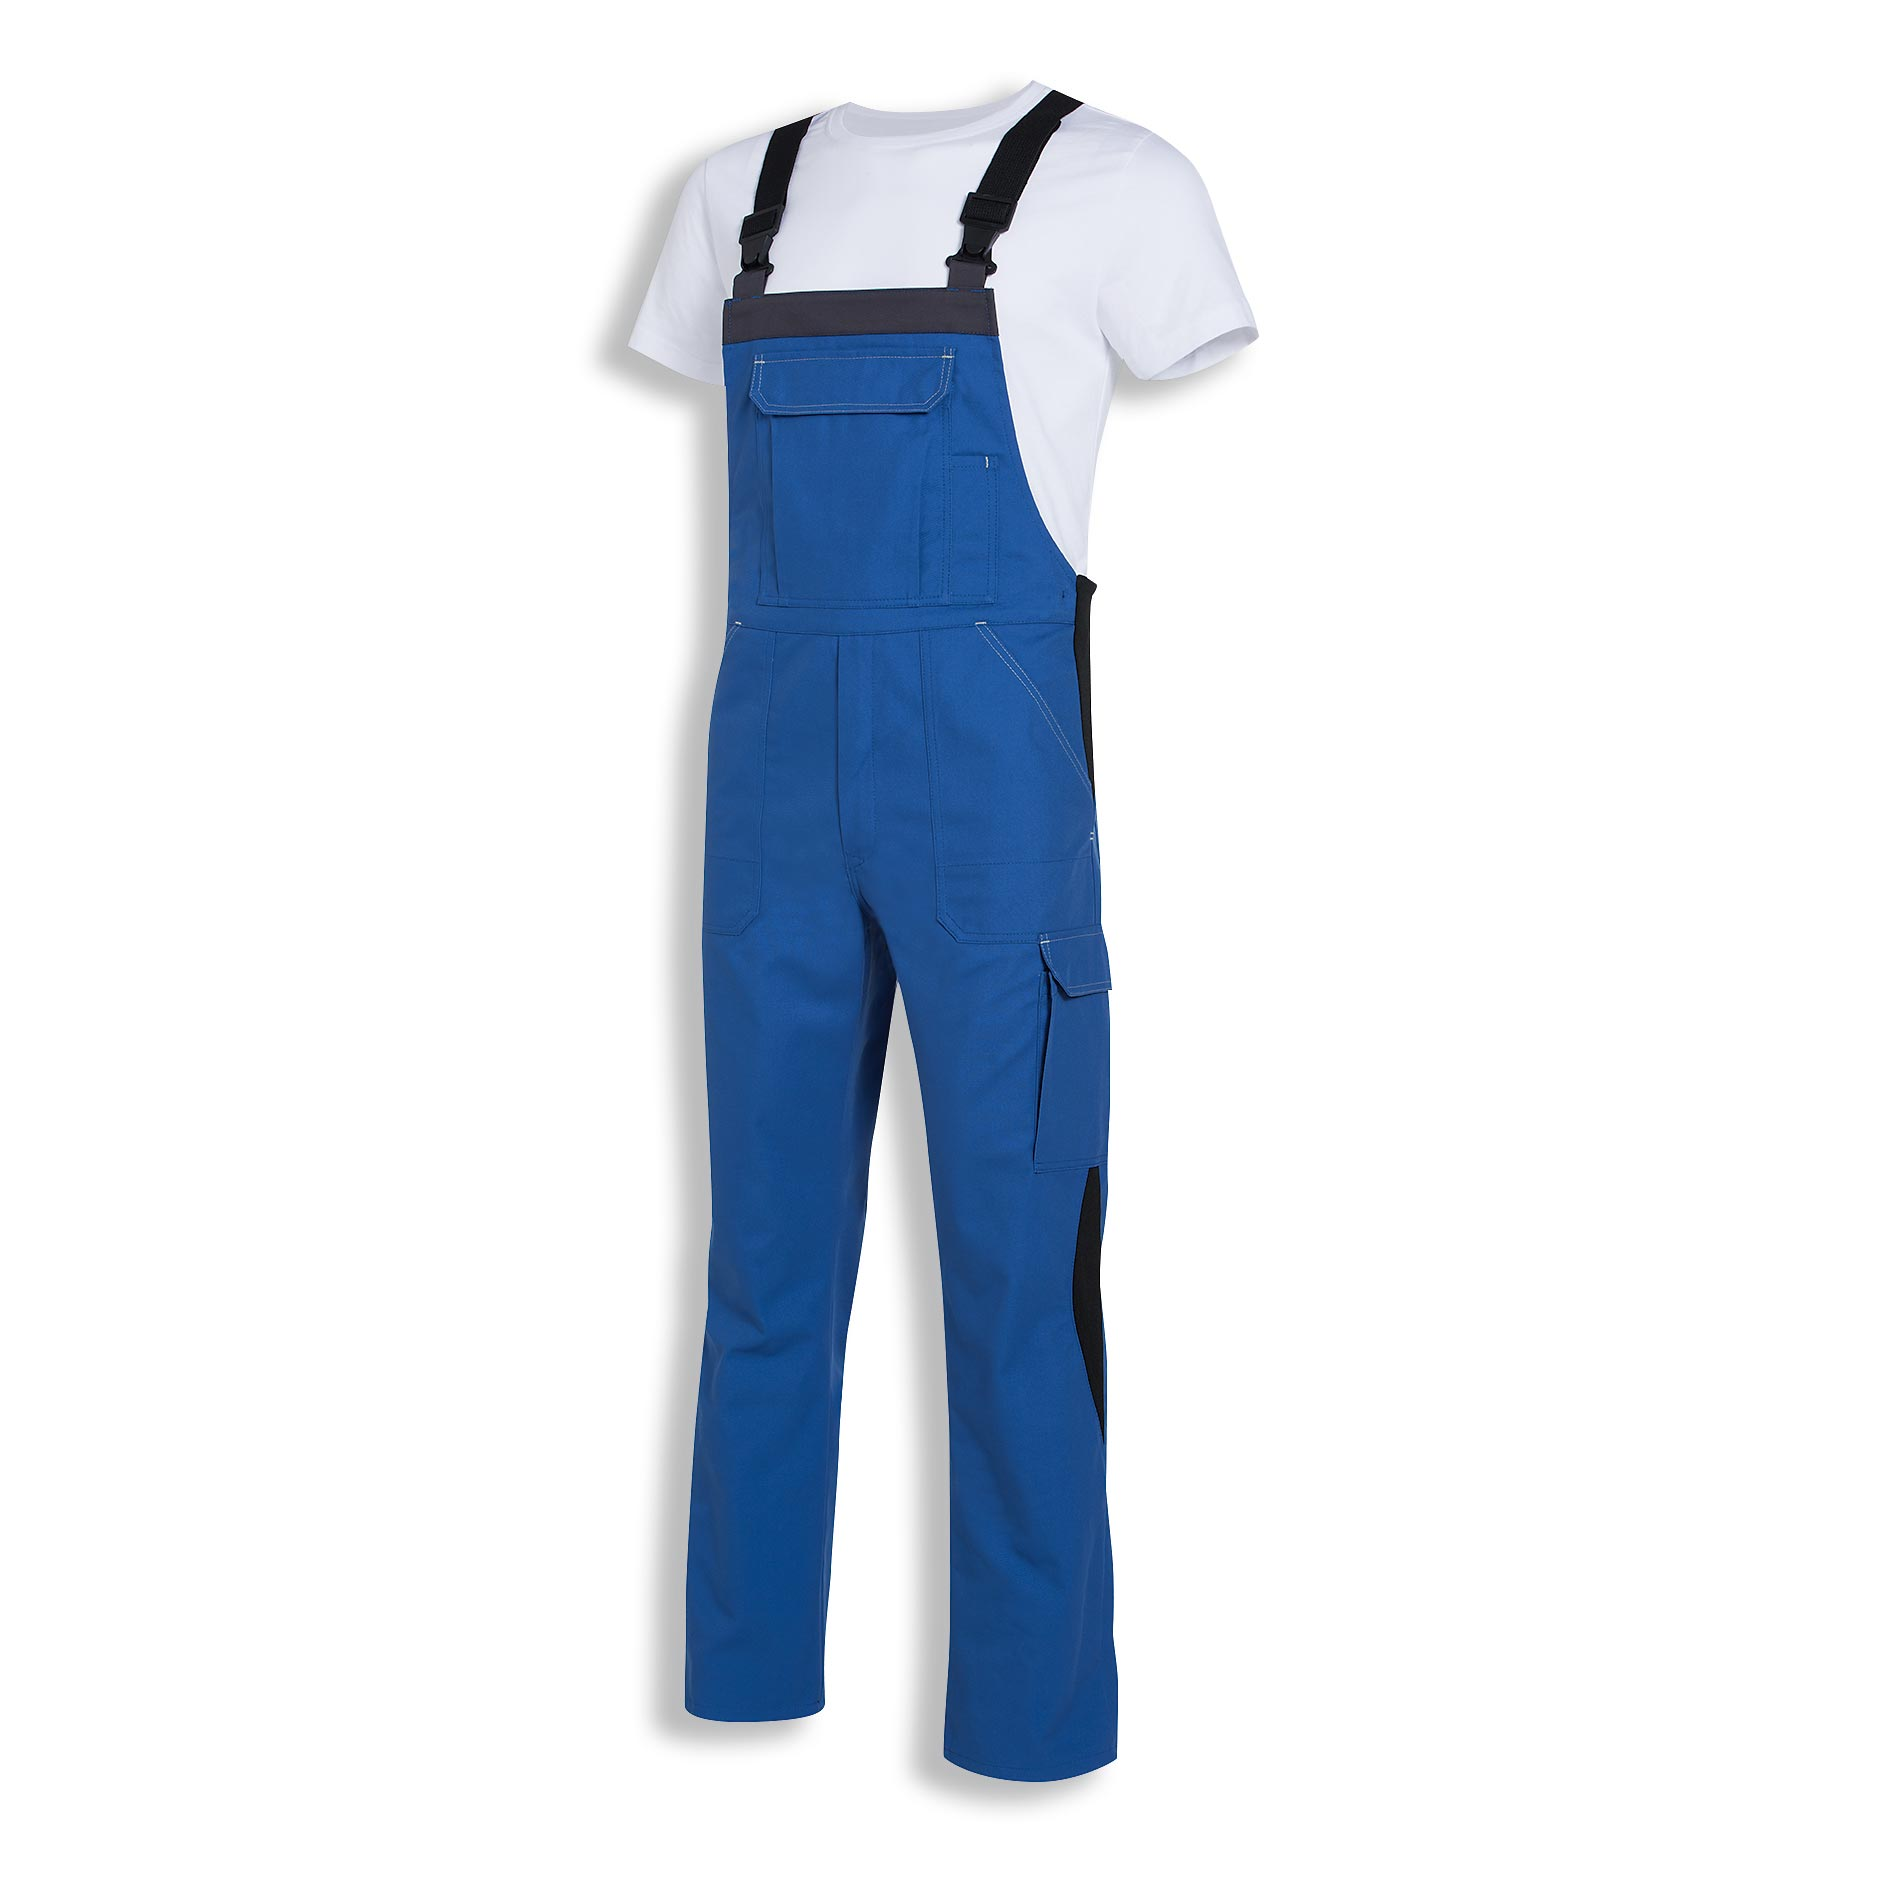 Uvex Perfect Dungarees Protective Clothing And Workwear